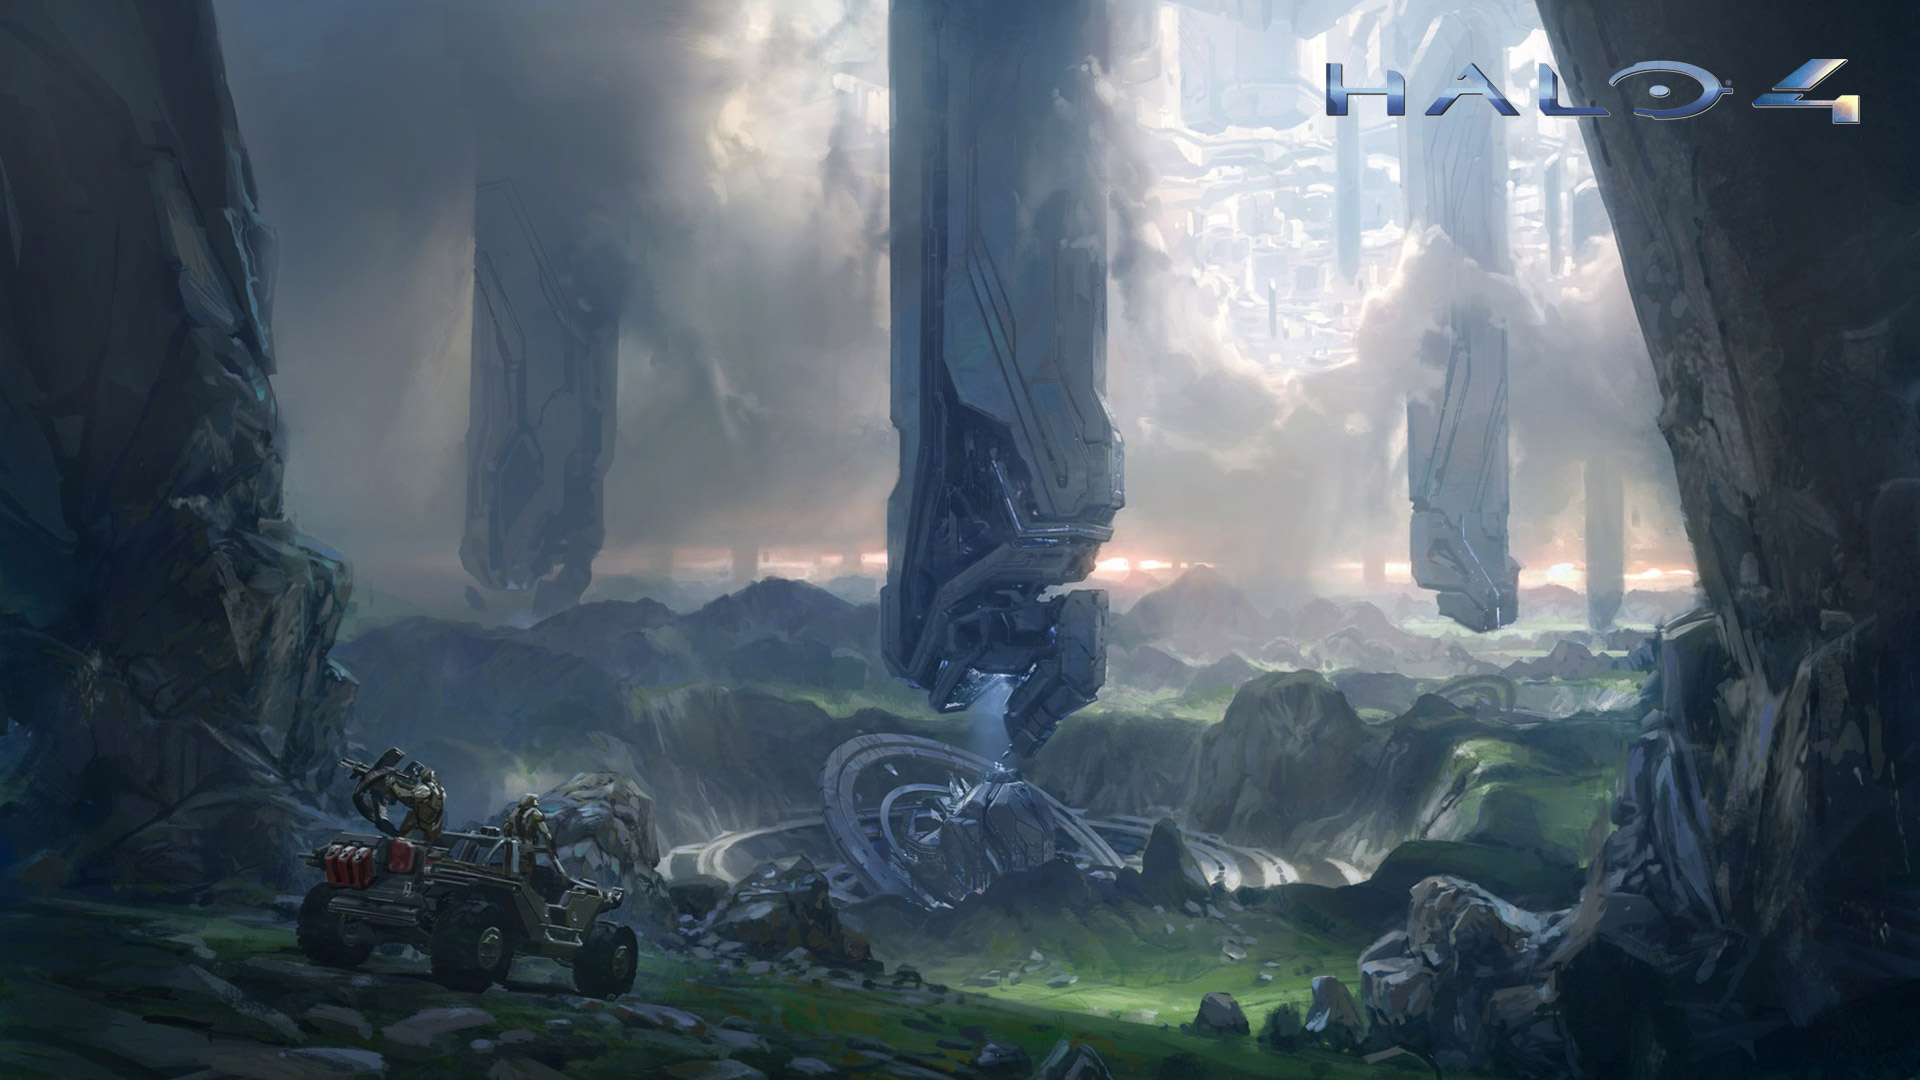 Halo 4 Wallpaper in 1920x1080